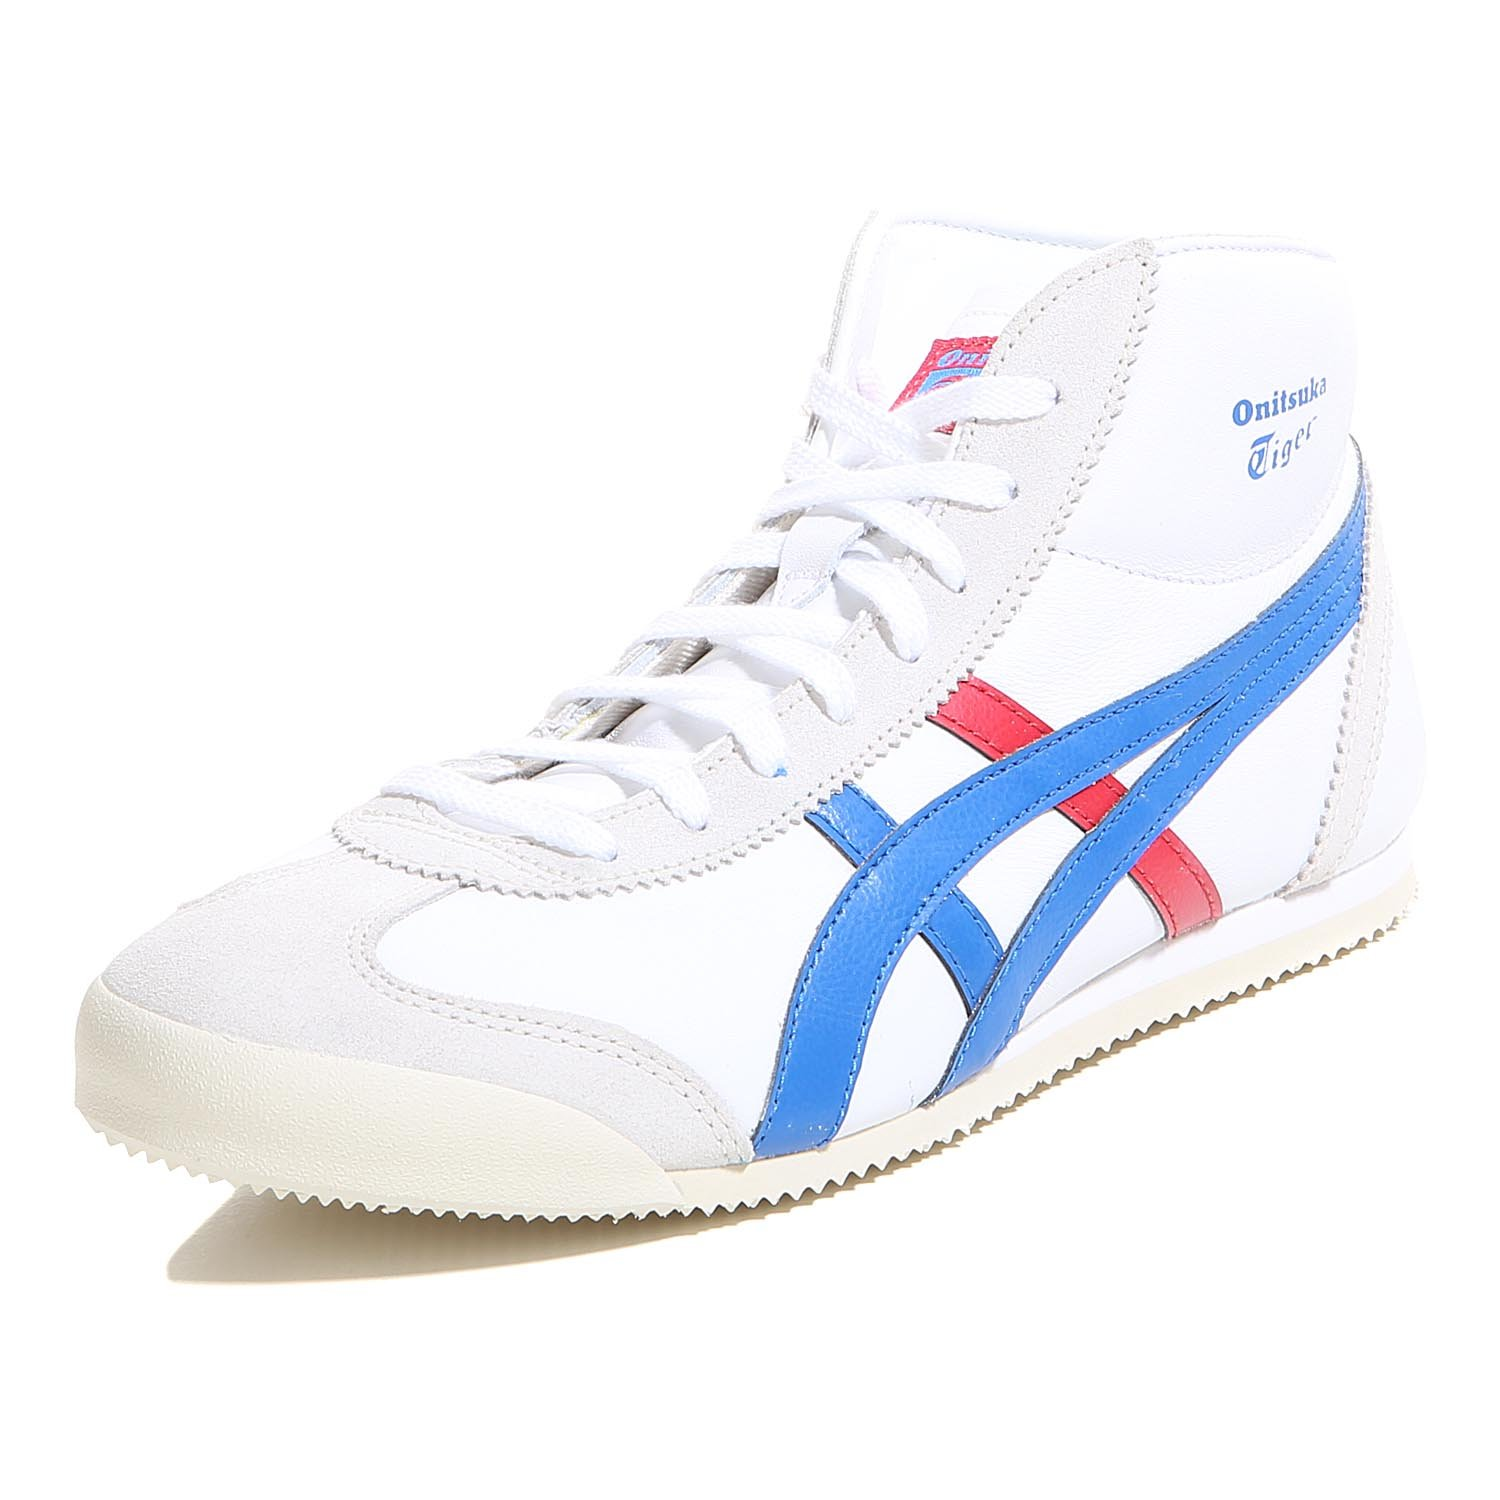 fb8fab2dfa8 Onitsuka Tiger Mexico Mid Runner Sneaker White   D  Amazon.co.uk  Shoes    Bags